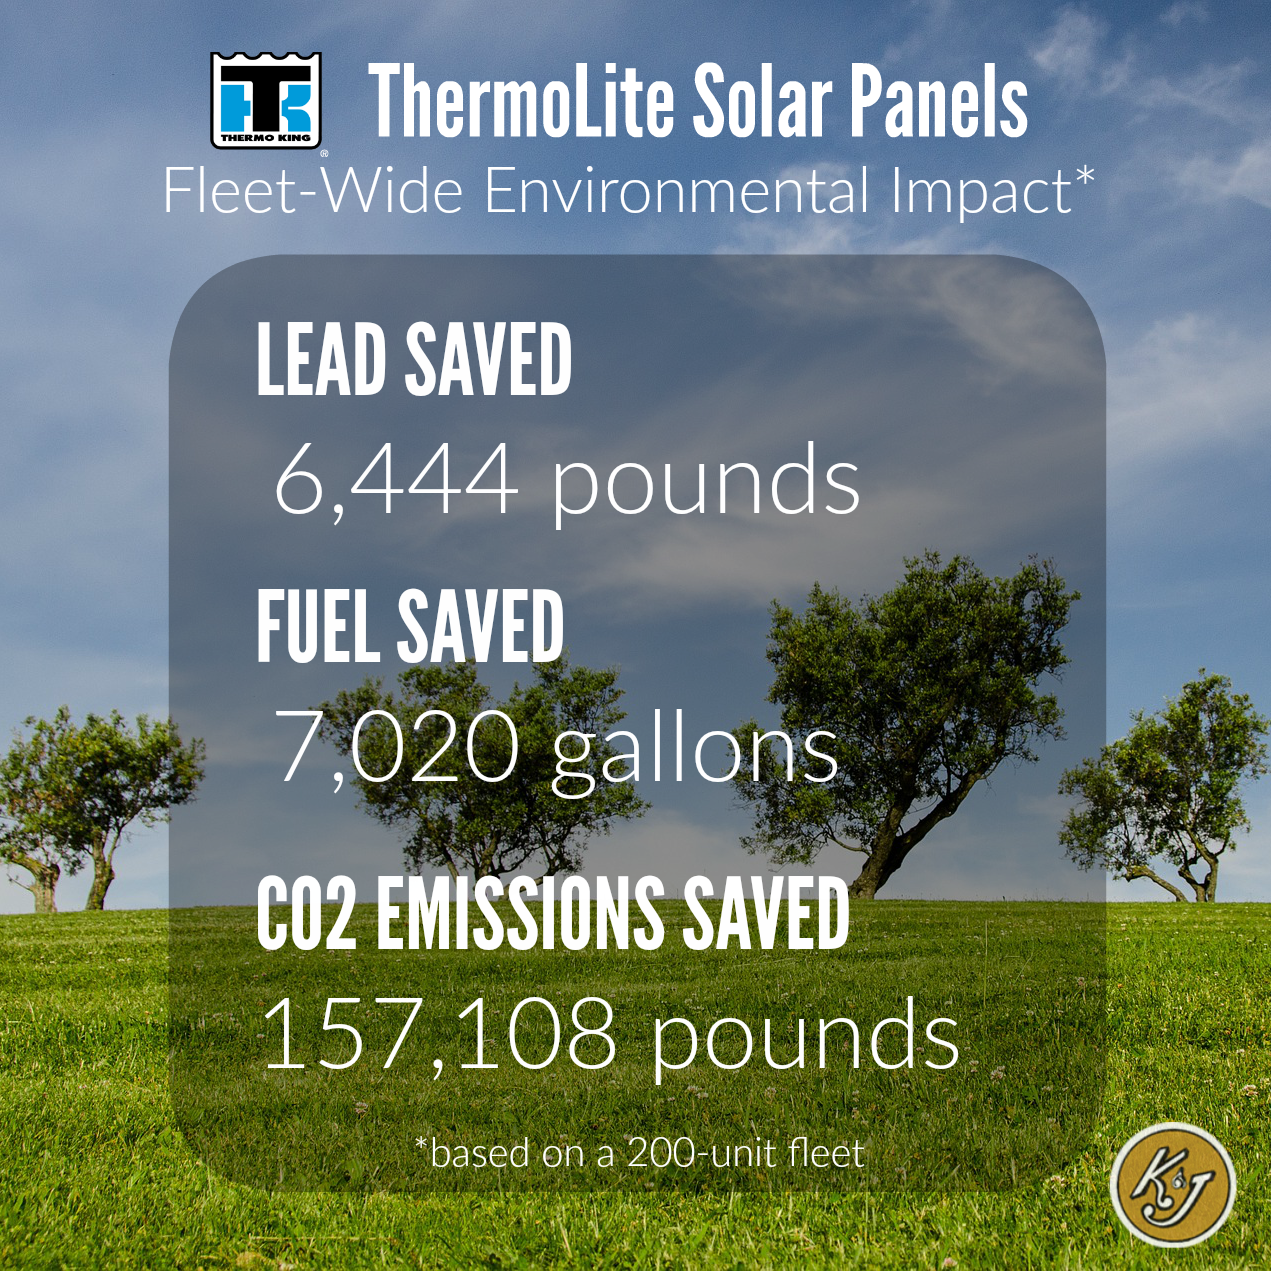 ThermoLite Solar Panels - Fleet-Wide Environmental Impact - K&J Trucking